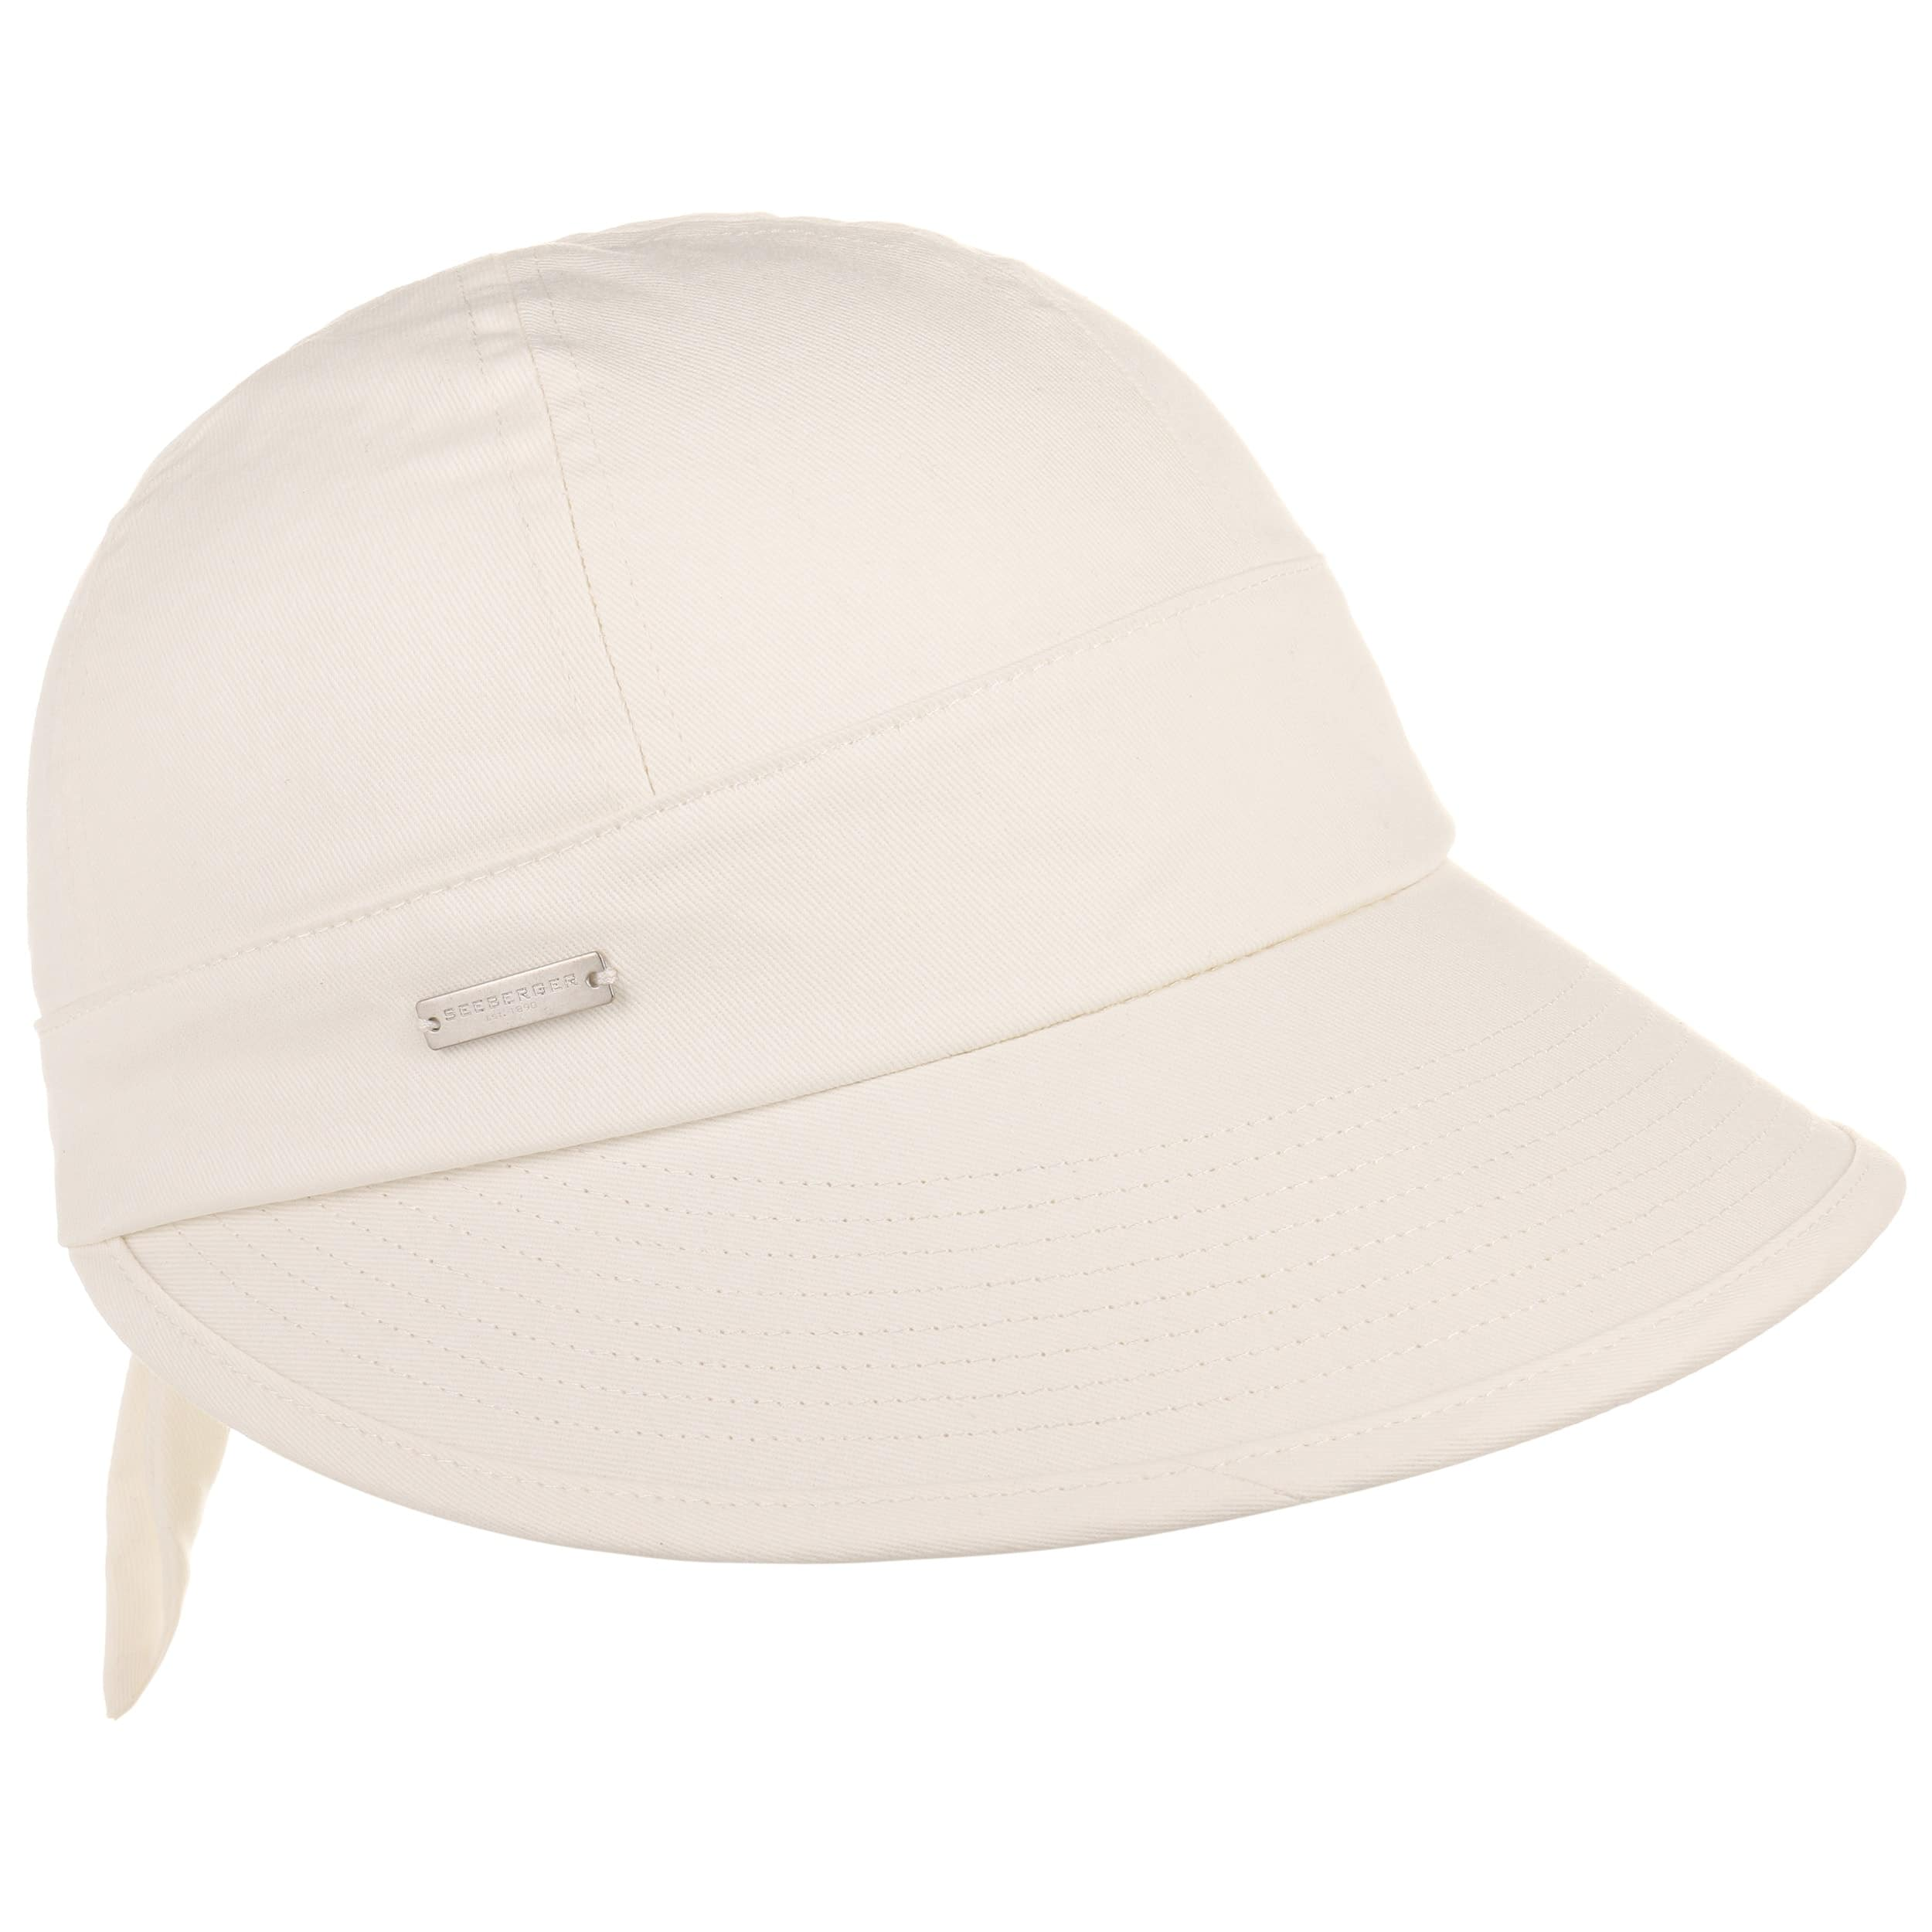 3f540897347276 ... Sunshine Cap by Seeberger - cream white 5 ...